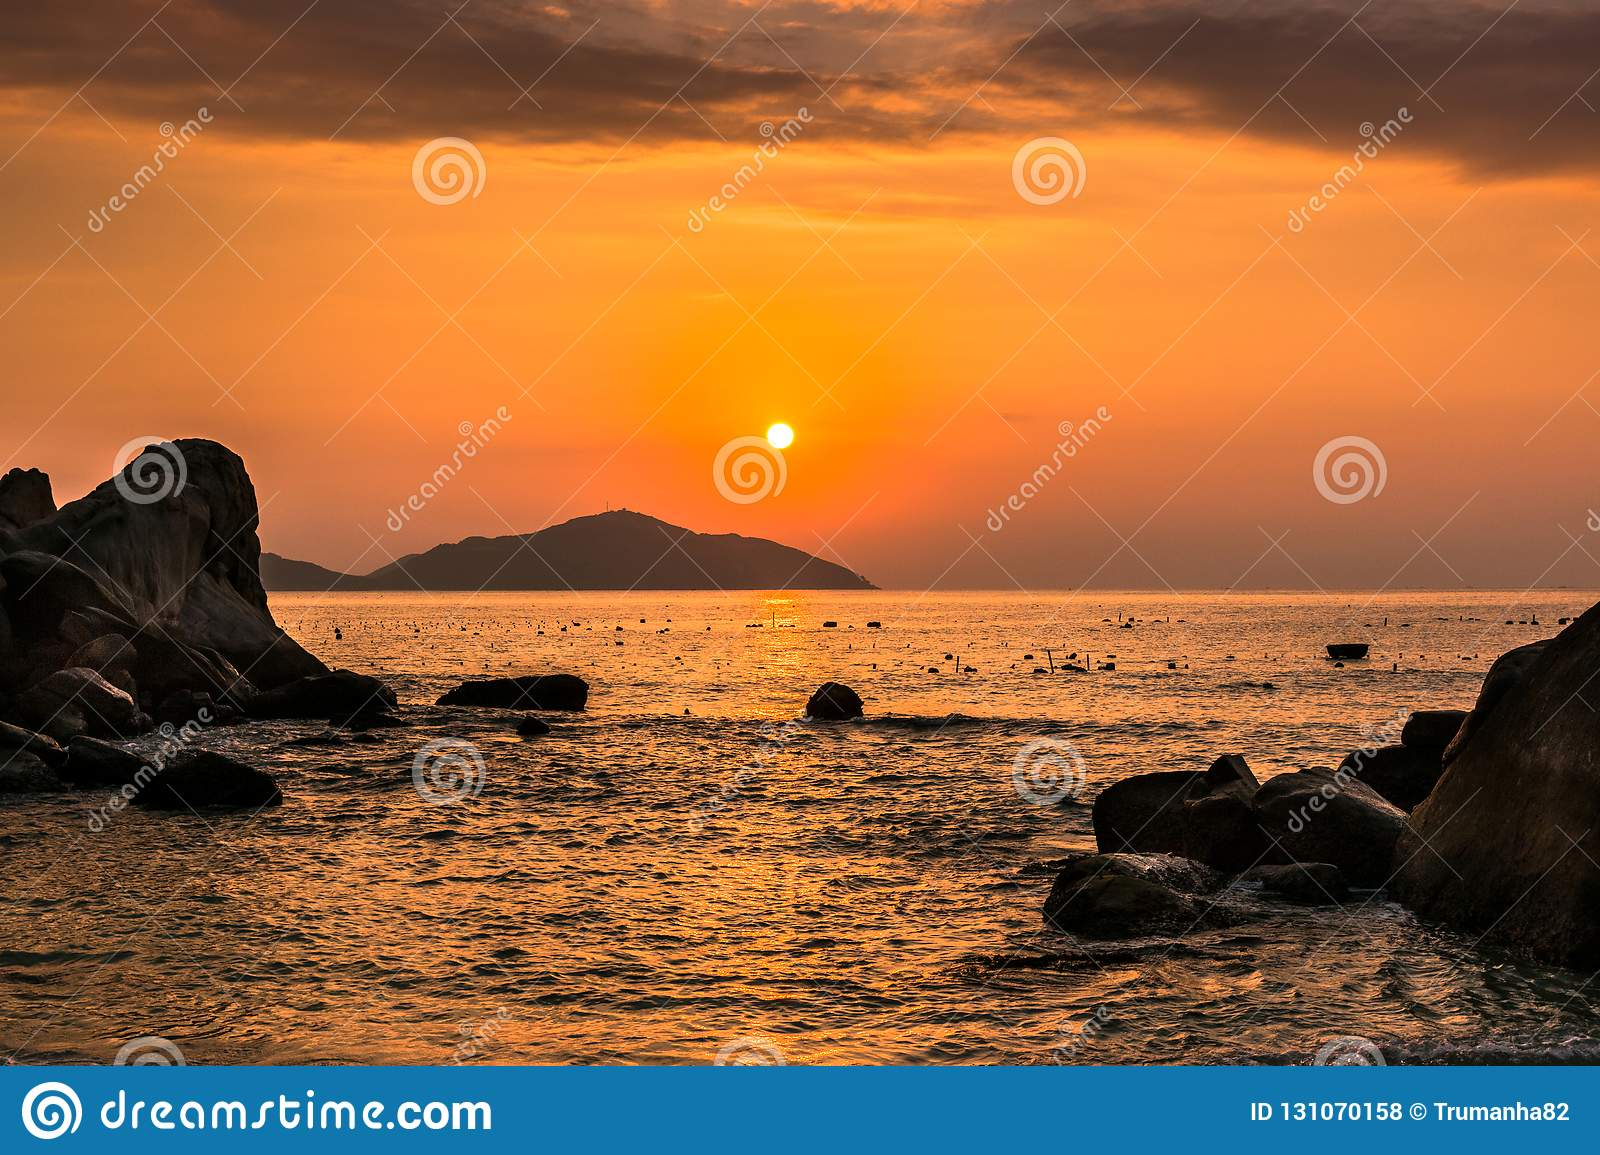 Nature Seascape with Boulders, Islands and Waves at Orange Sunrise